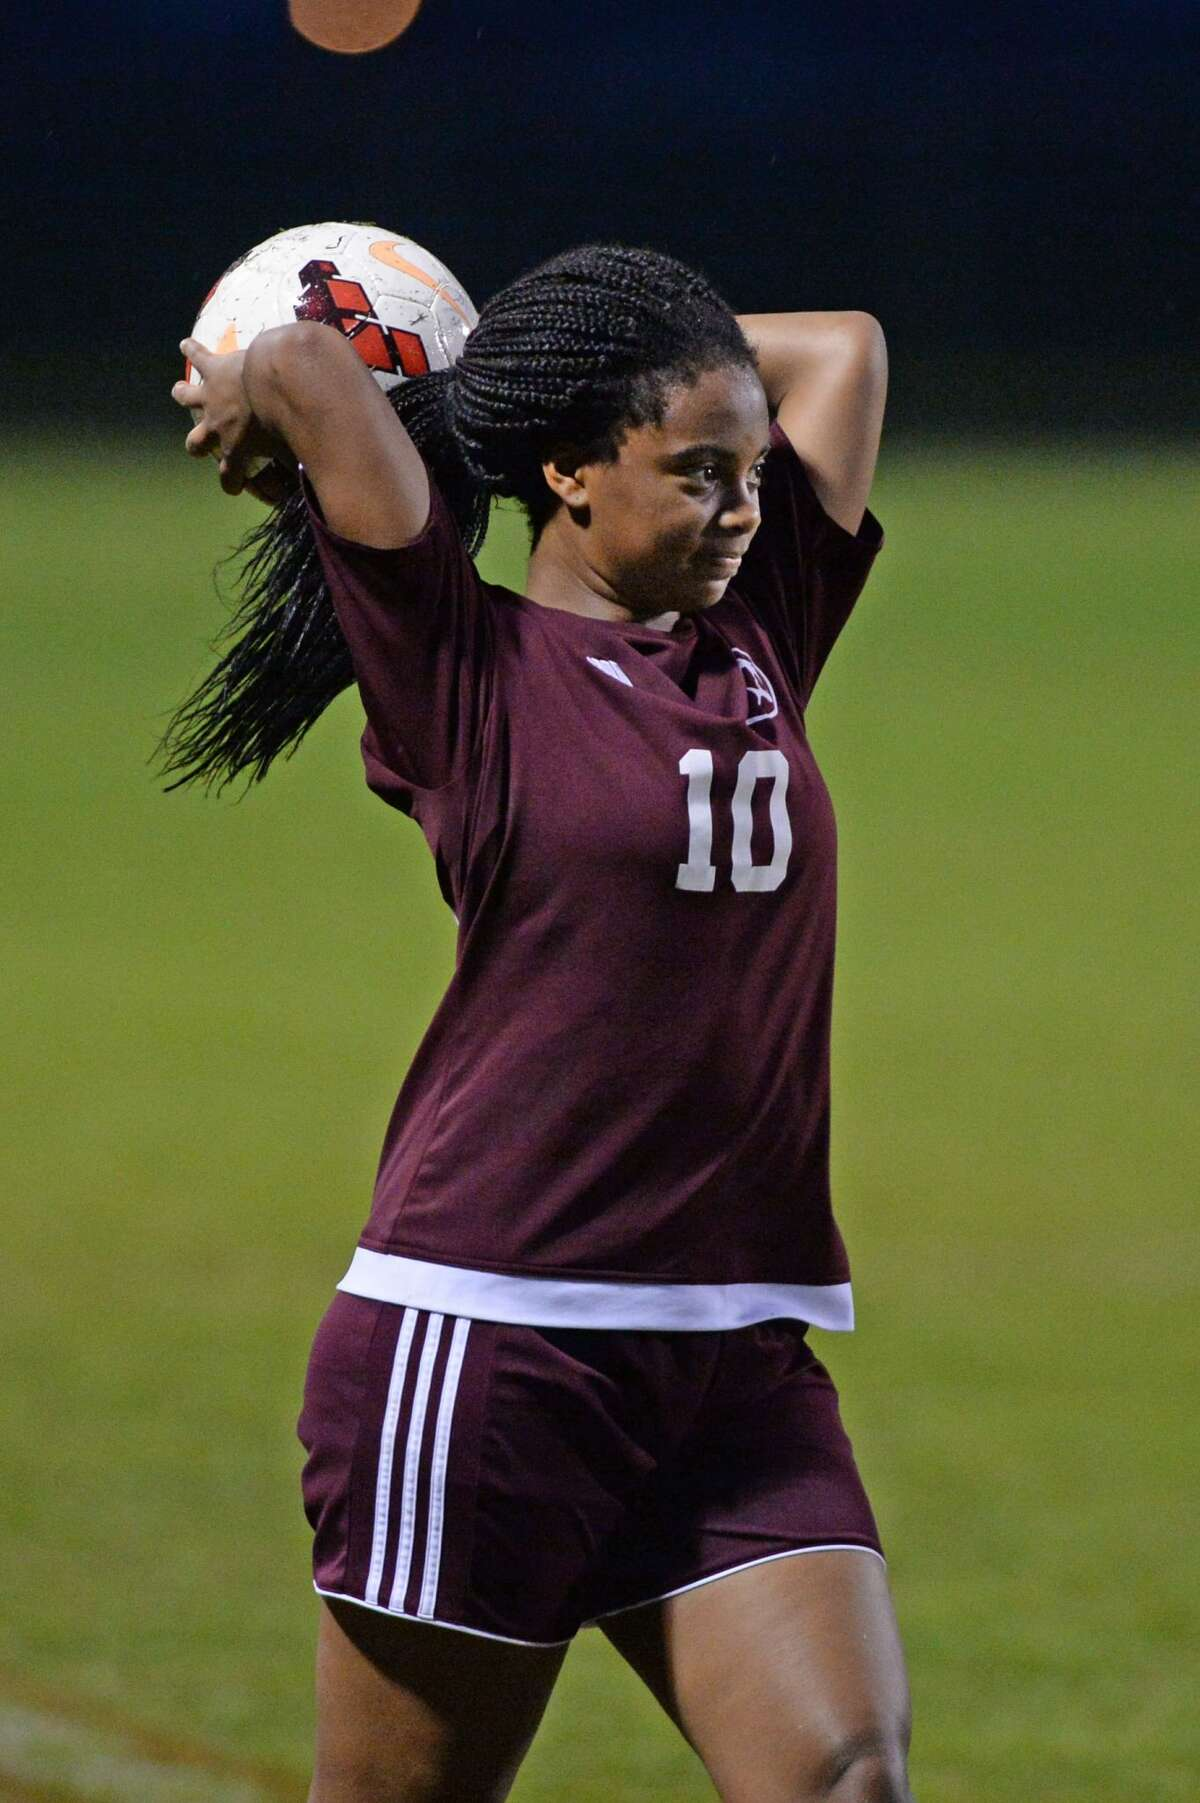 Kenedy Verge (10) of Kempner makes a throw-inj during the first half of a girls high school soccer game between the Travis Tigers and the Kempner Cougars on Friday, March 10, 2017 at Travis High School, Richmond, TX.